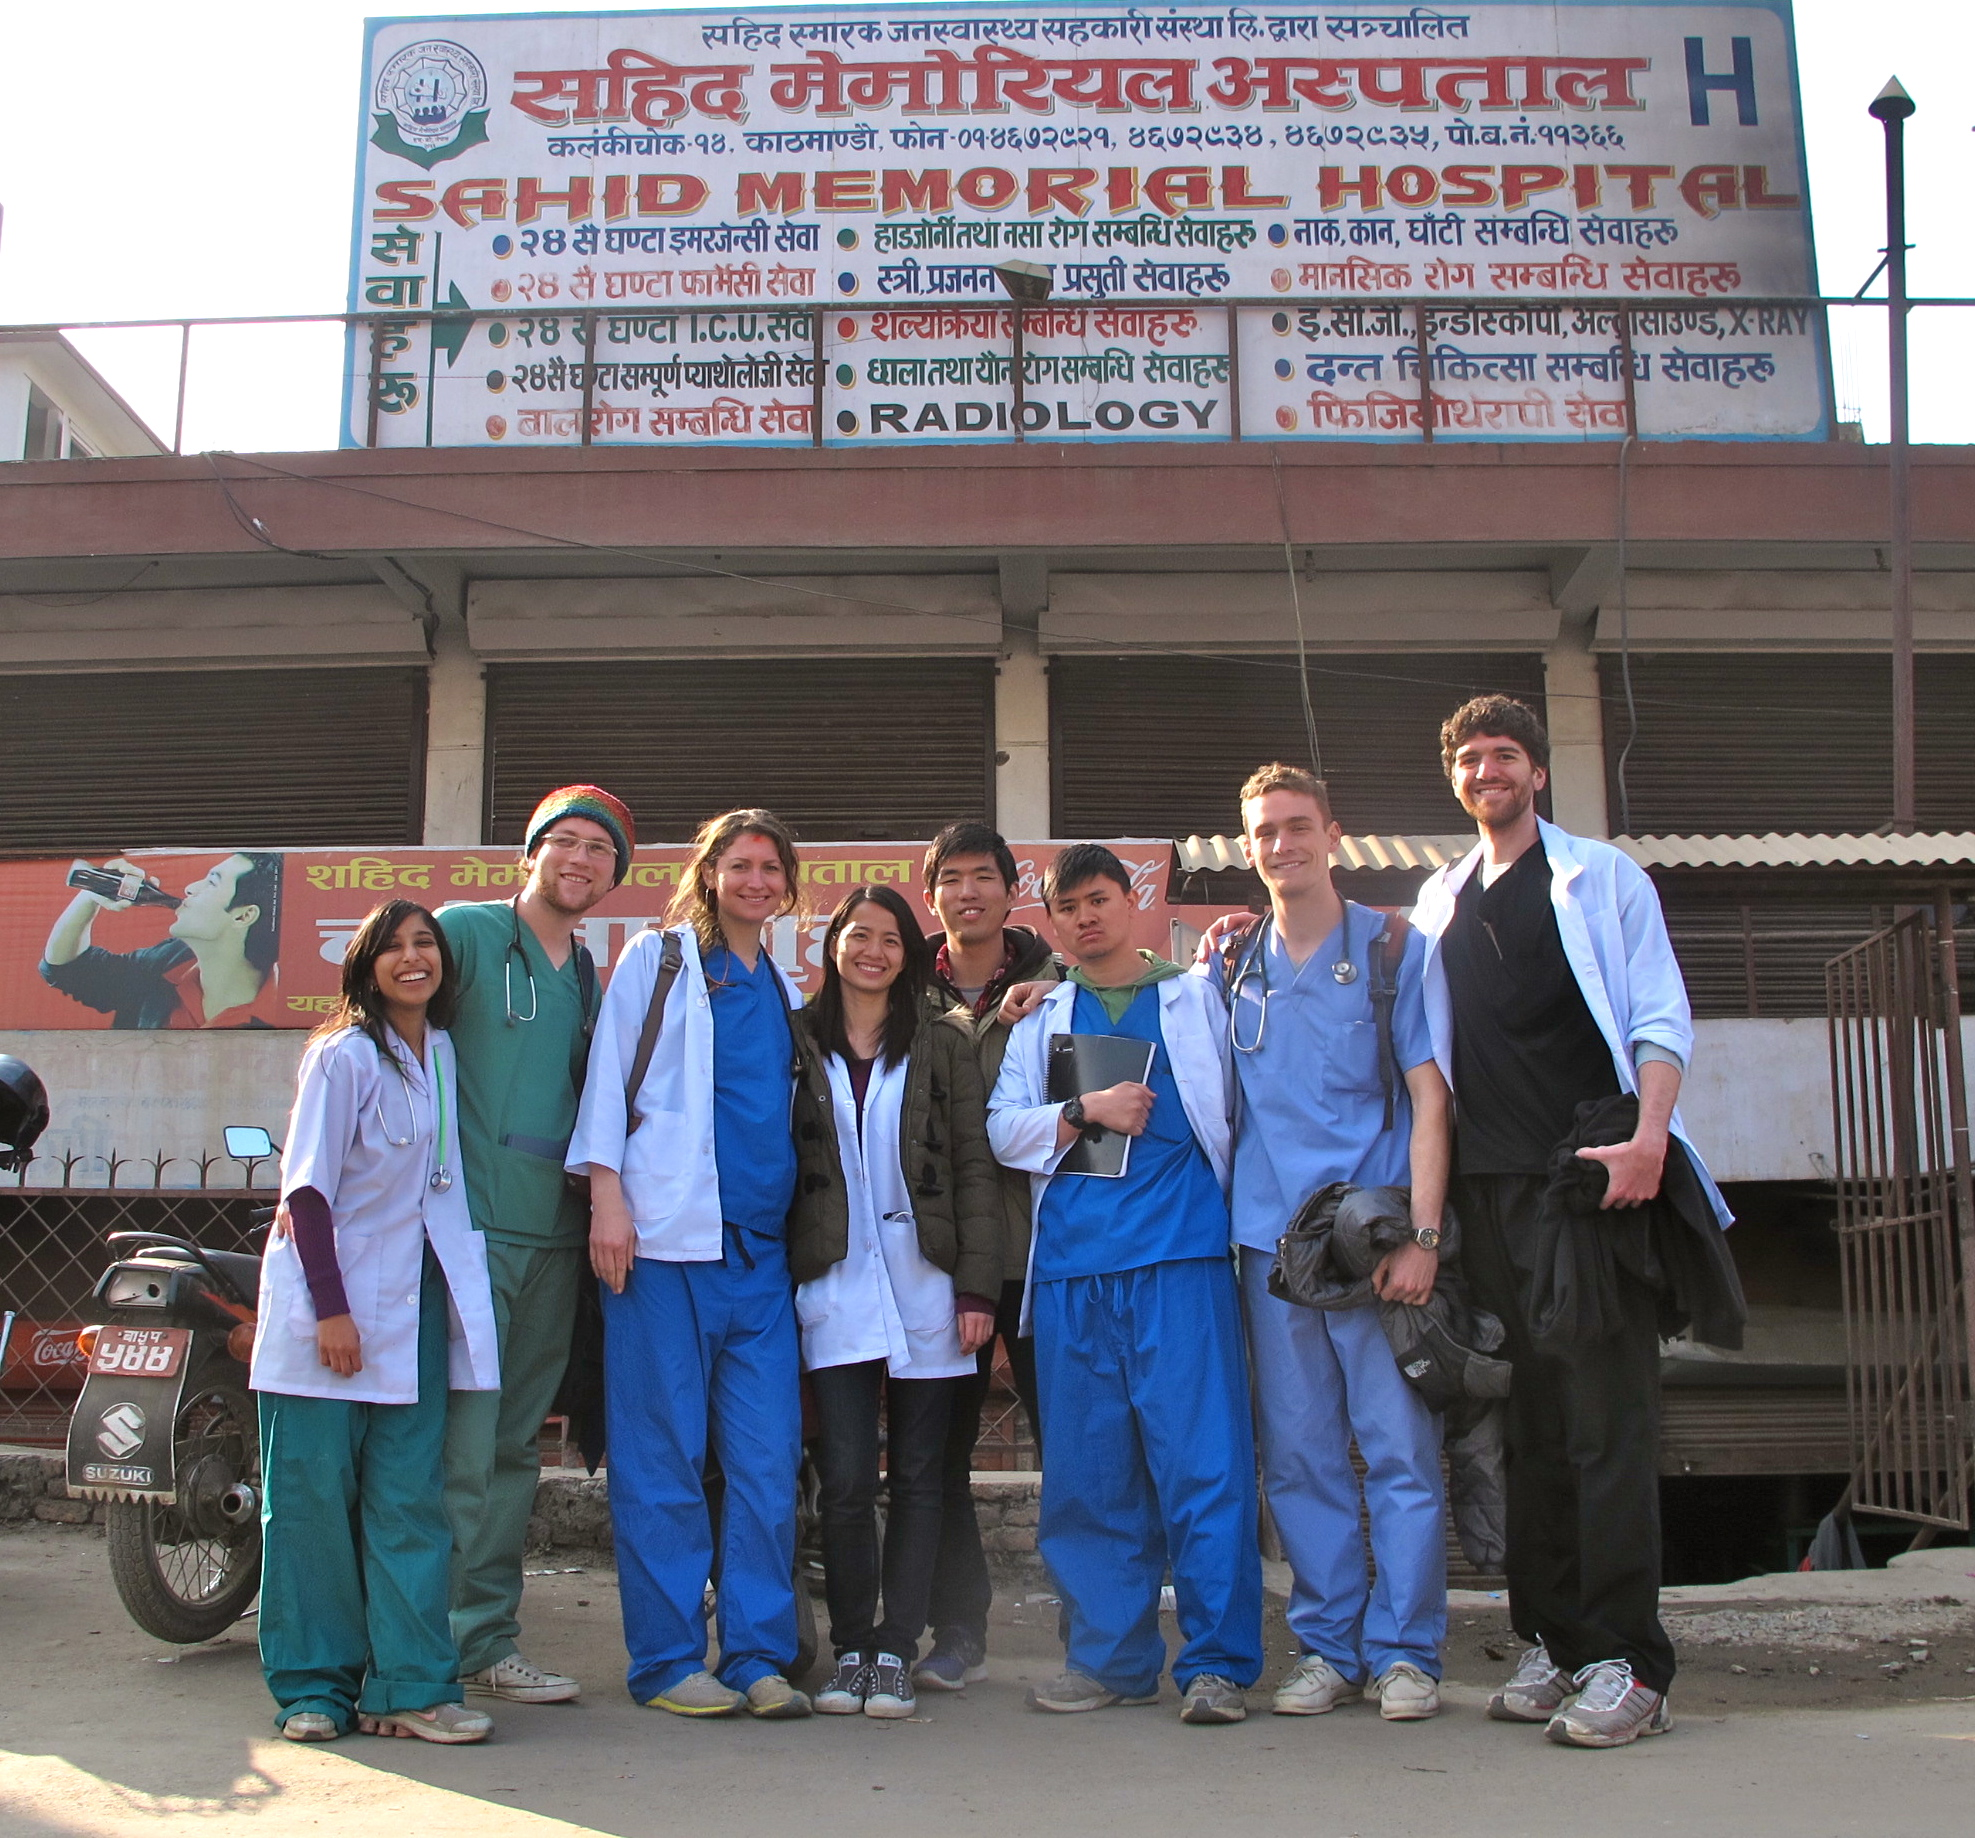 TouroCOM medical students outside Sahid Memorial Hospital in Nepal, where they volunteered.